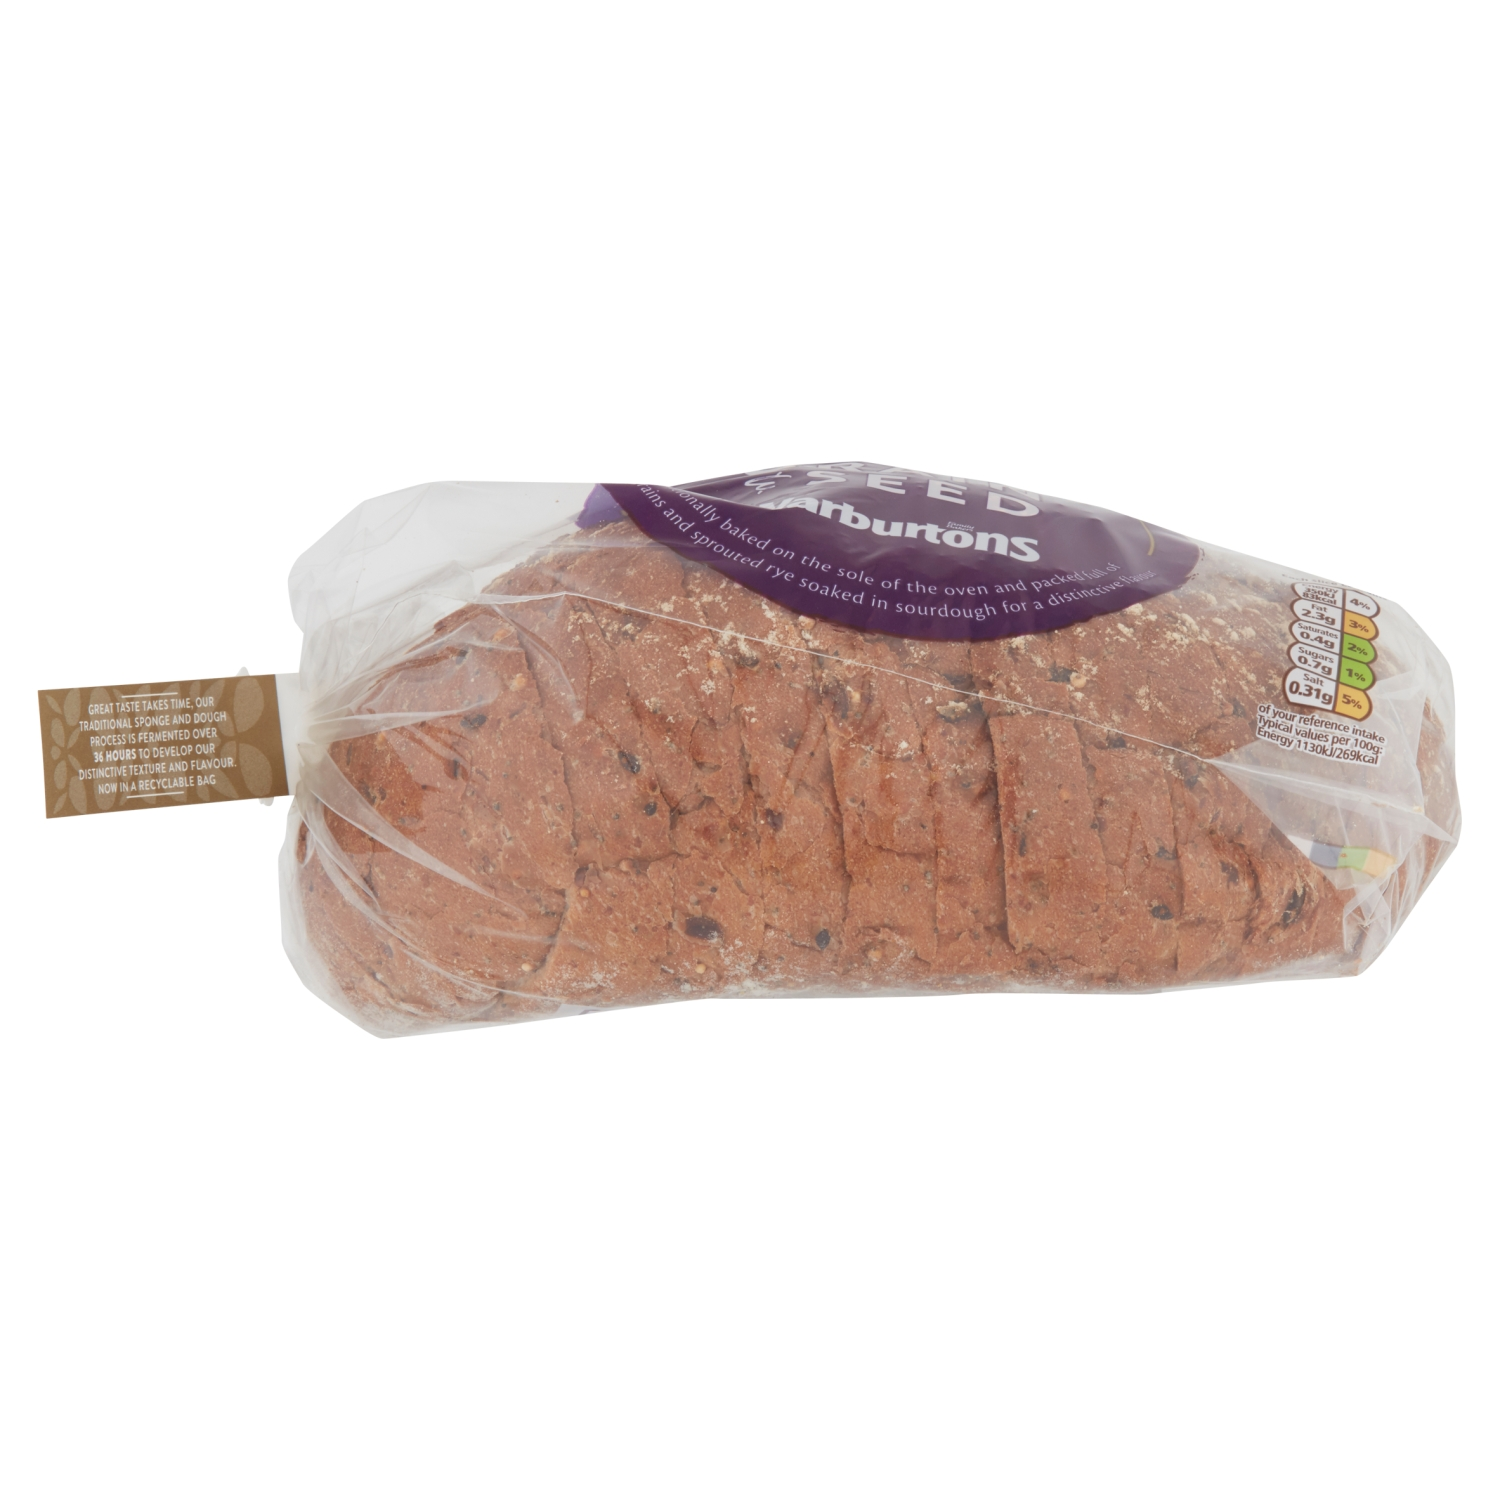 Warburtons Speciality Multi Grain and Seed Bread 400g